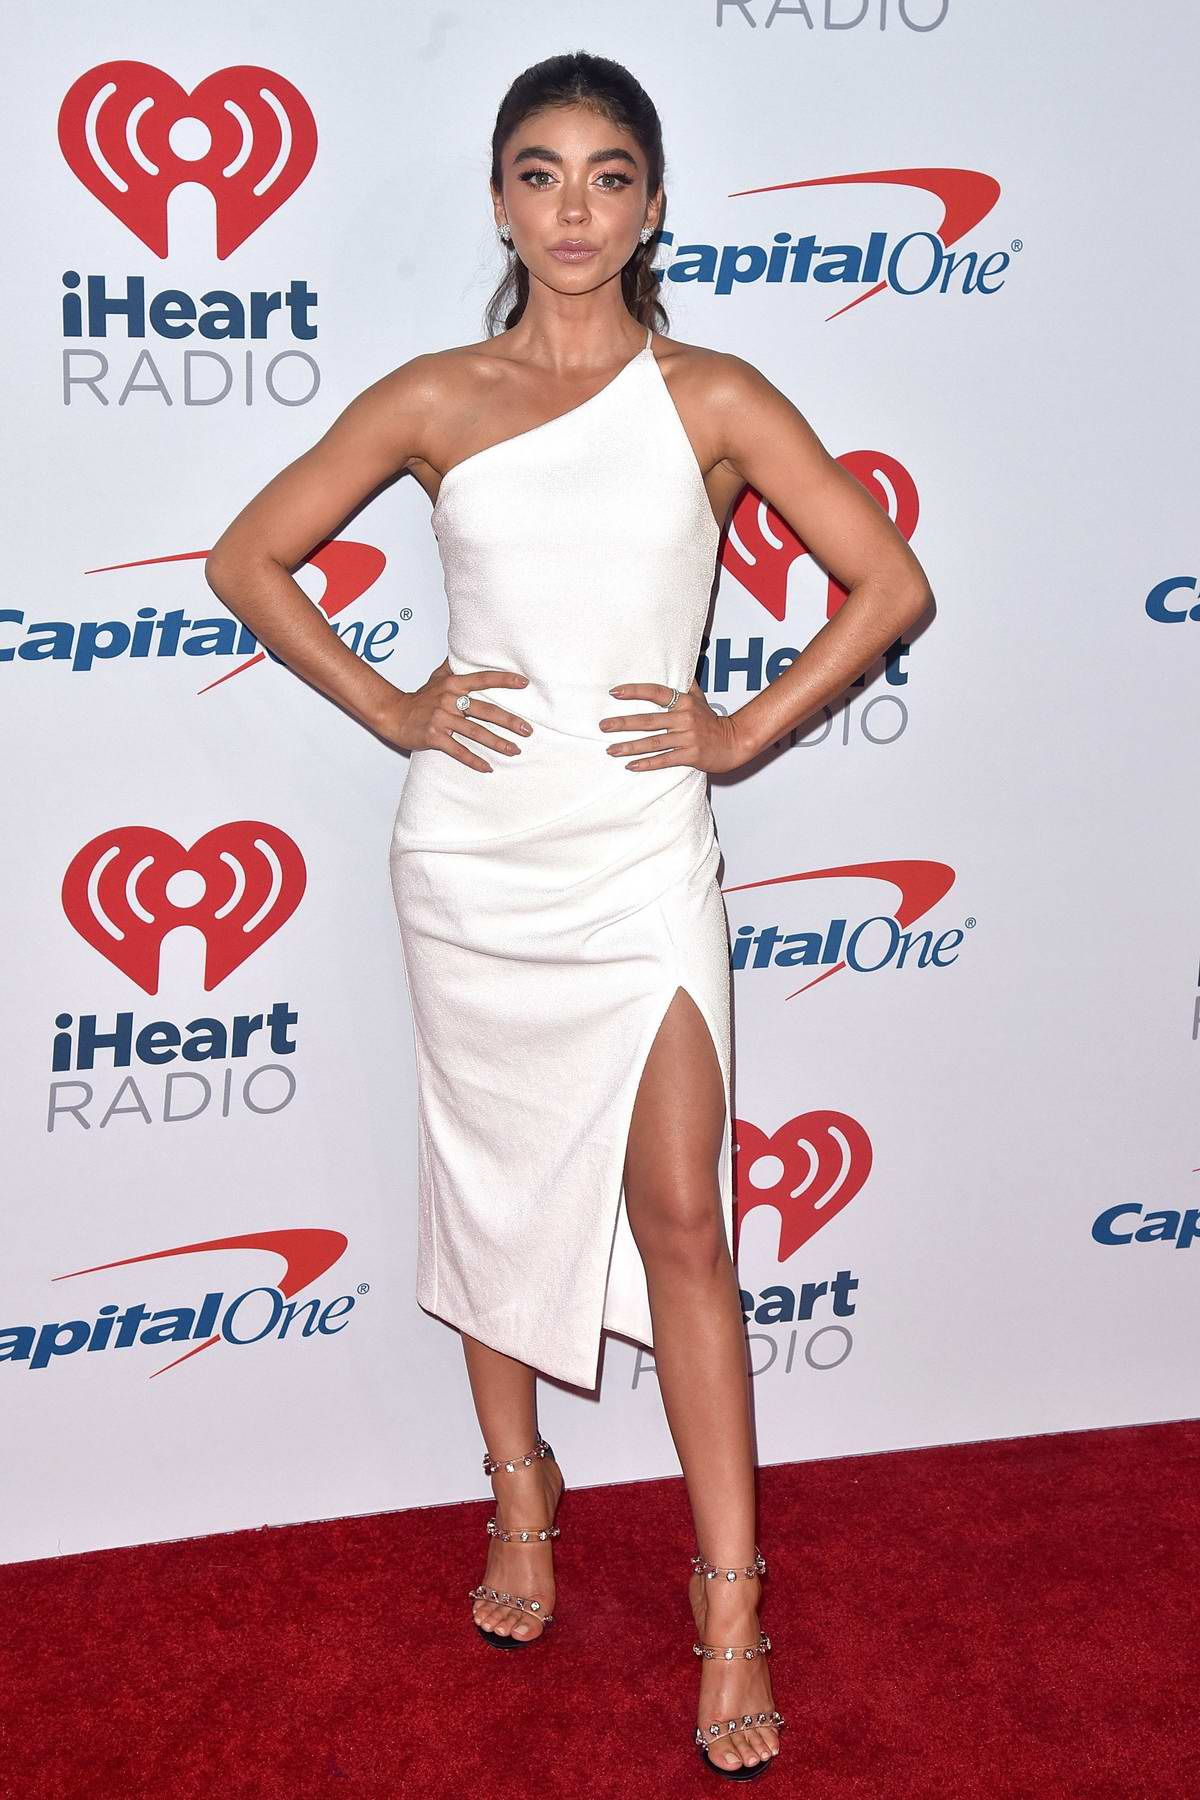 Sarah Hyland attends iHeartRadio Music Festival at T-Mobile Arena in Las Vegas, Nevada